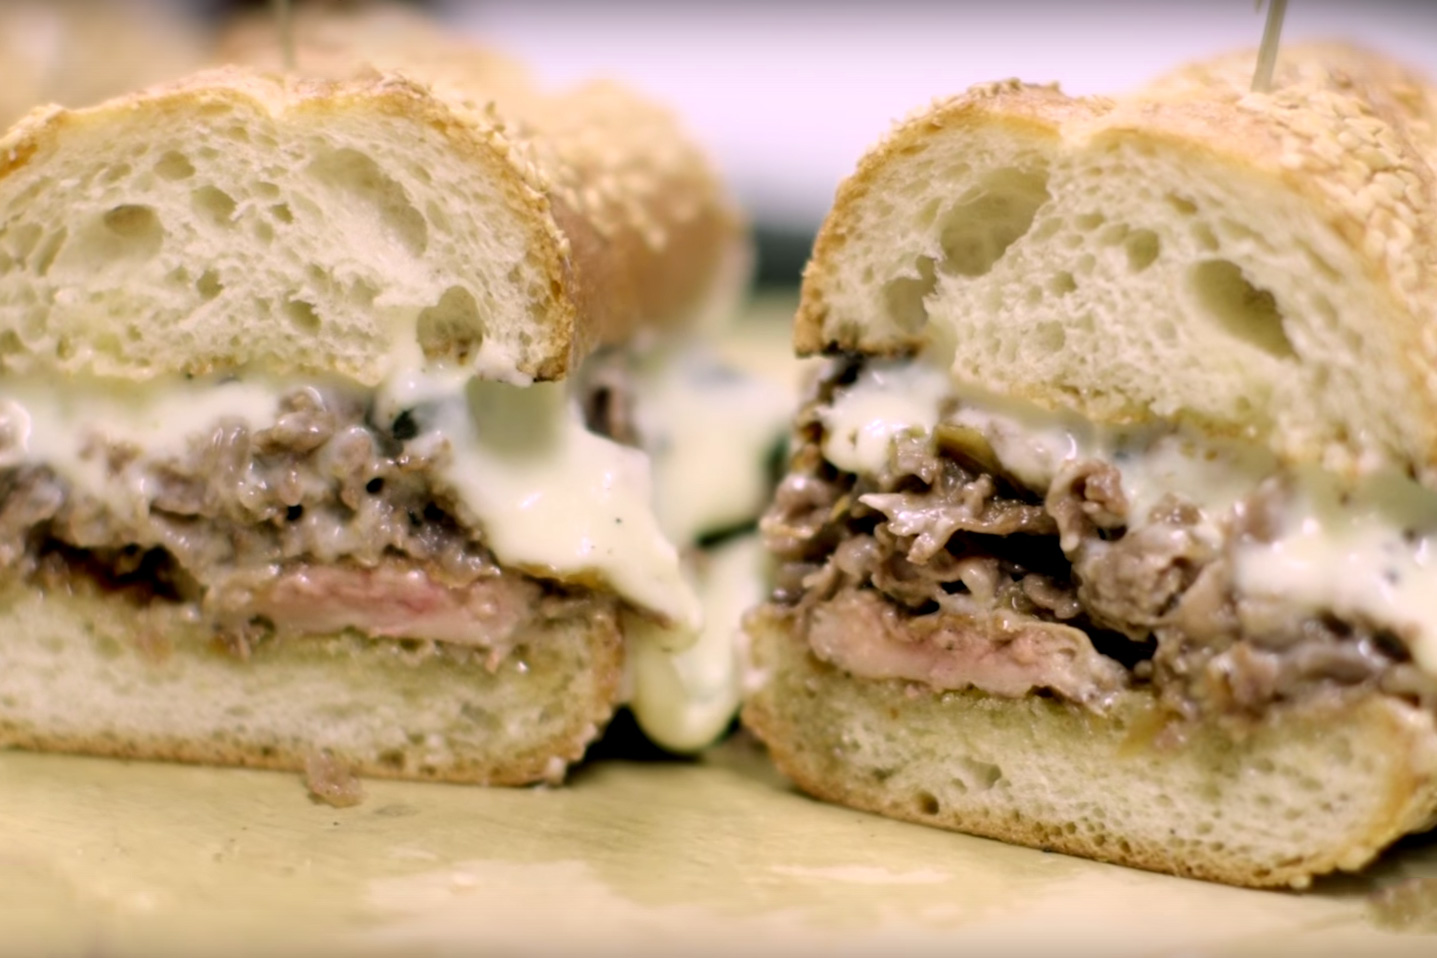 Watch How This $120 USD Philly Cheesesteak Is Made